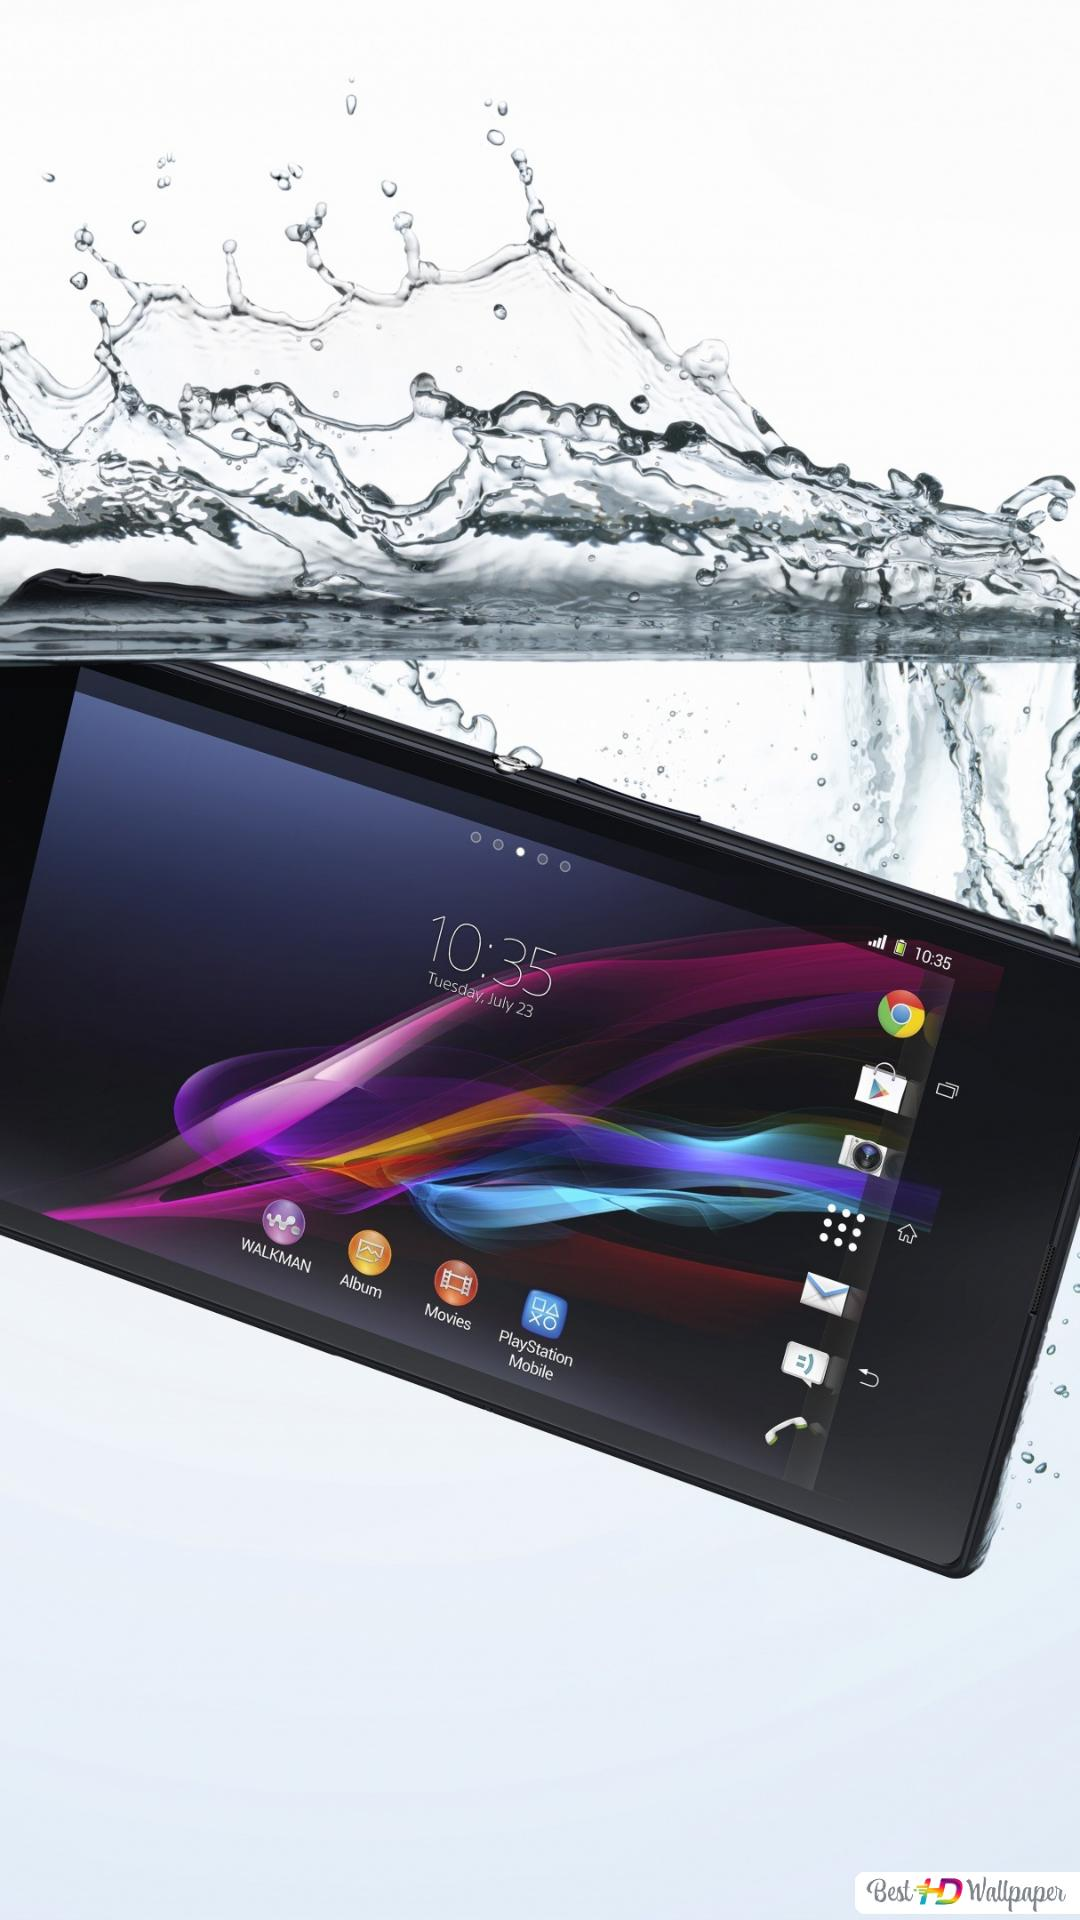 Sony Xperia Z Ultra Waterproof Hd Wallpaper Download